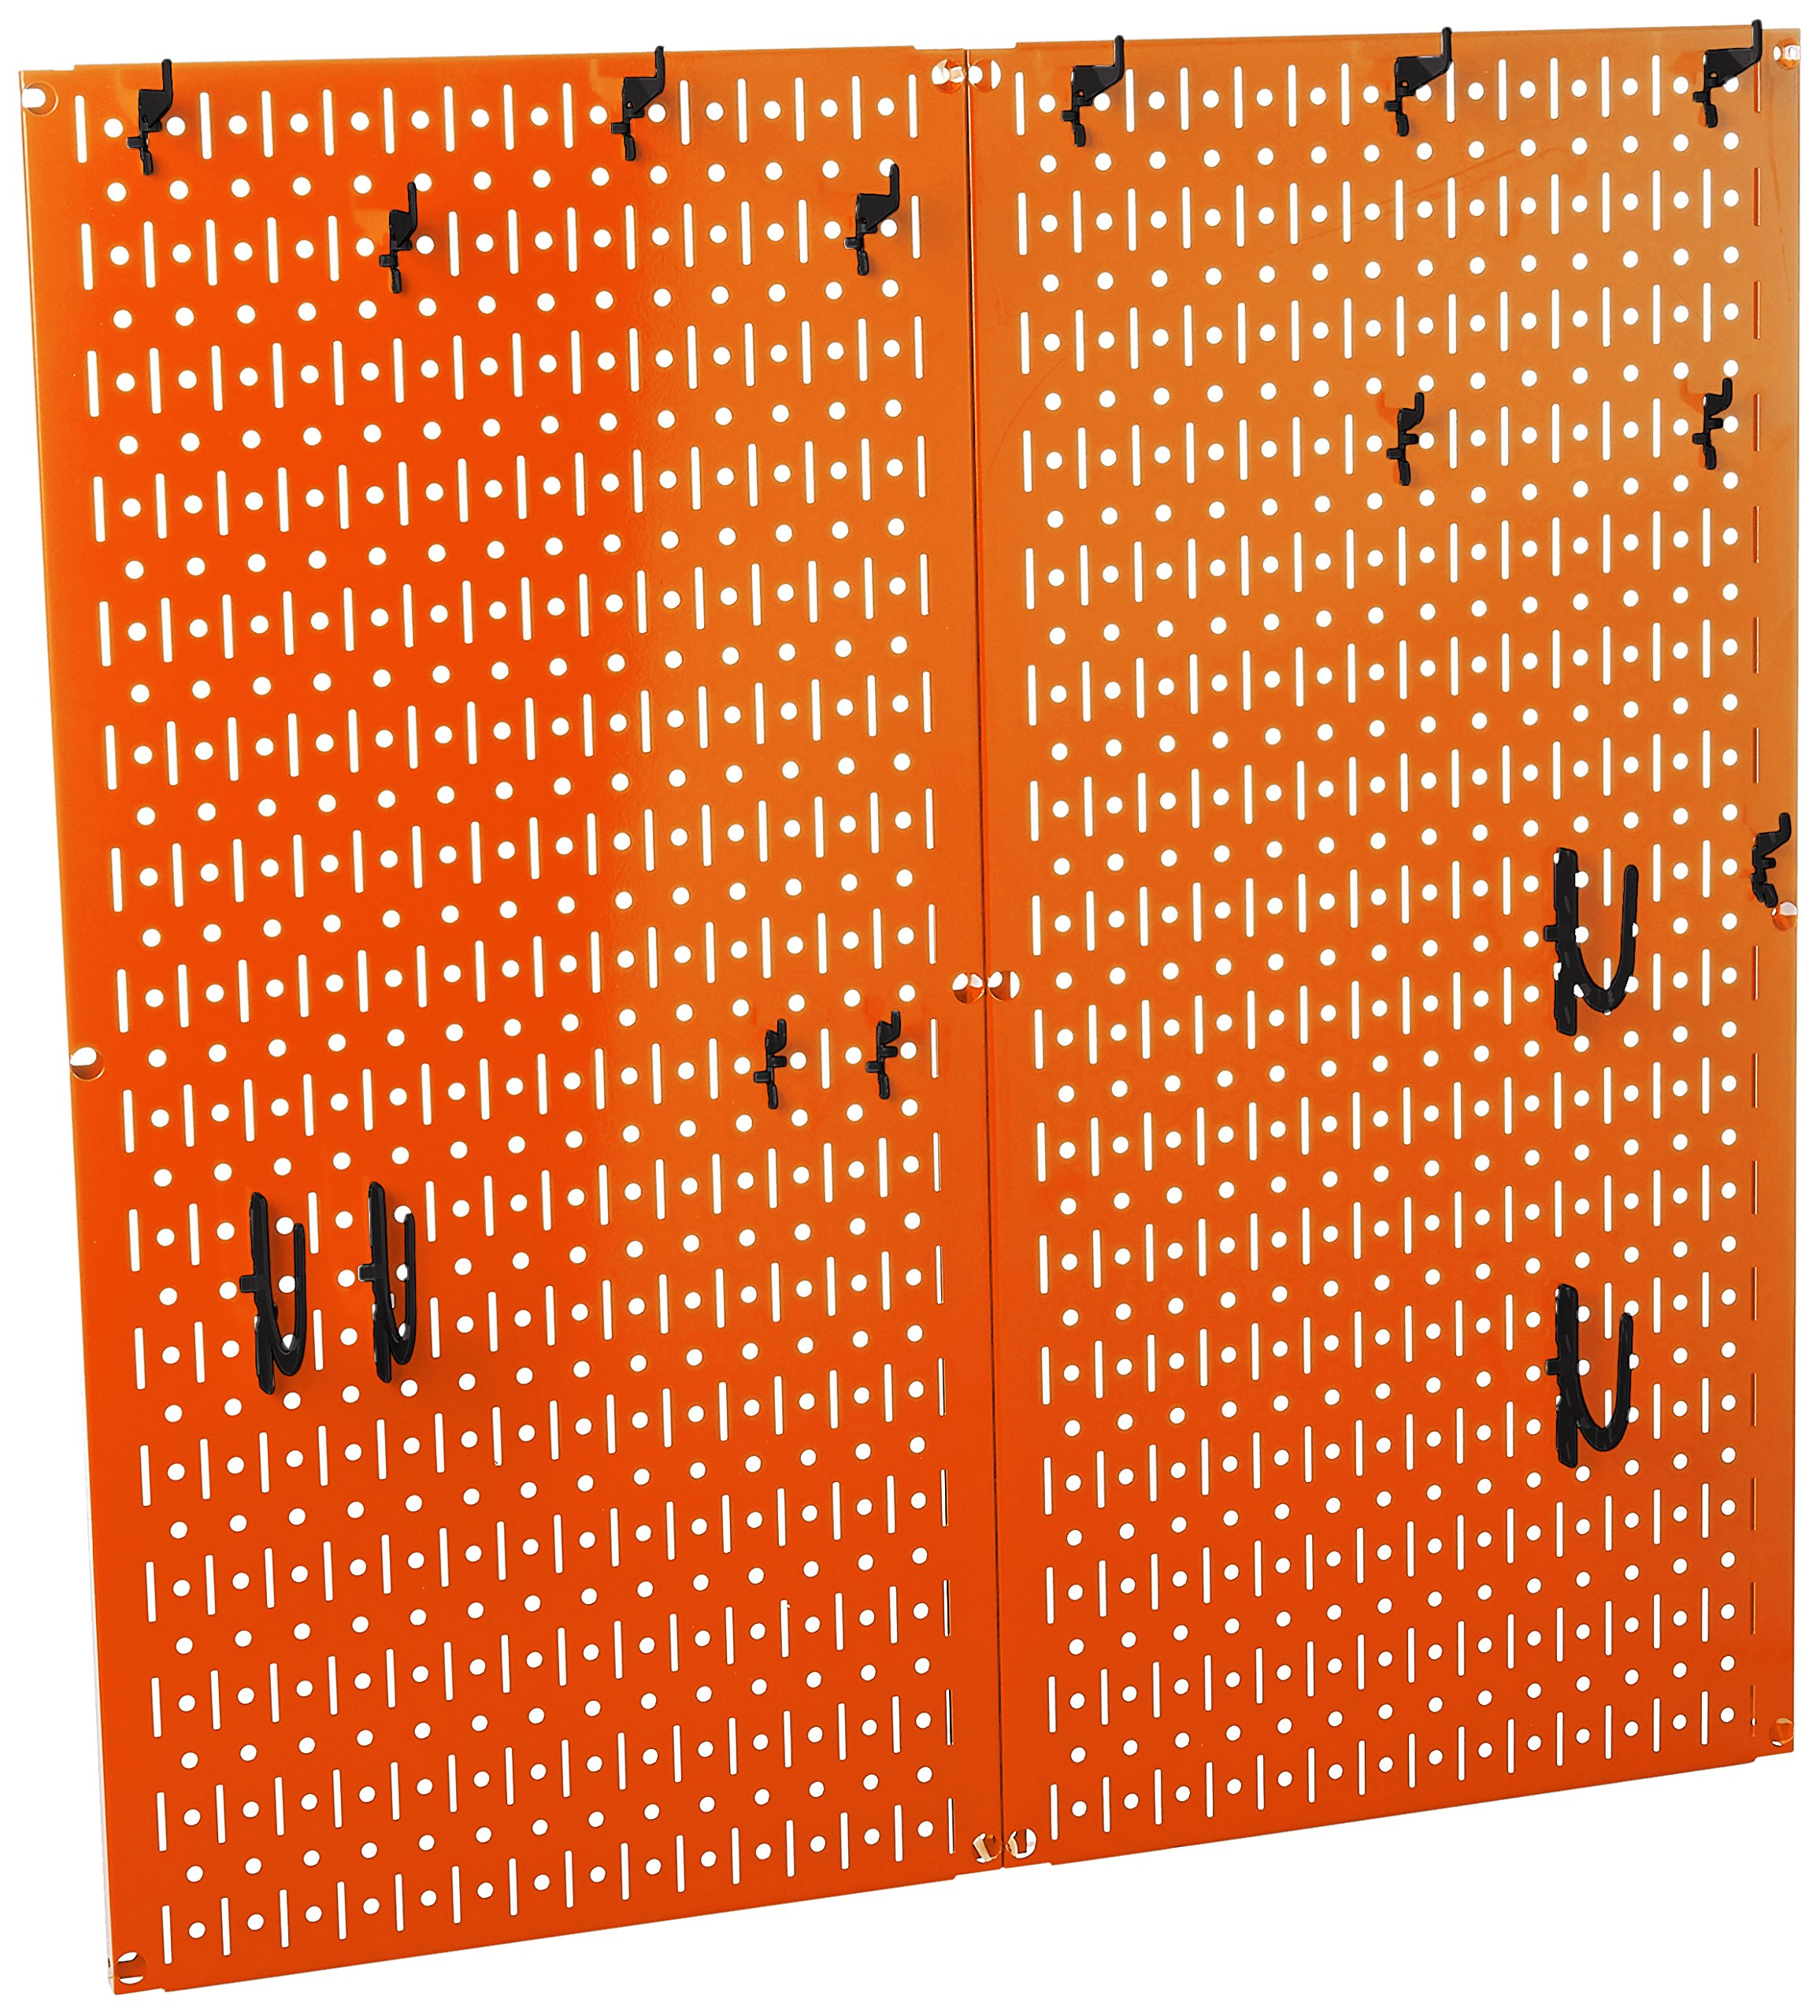 Wall Control 30-KTH-200 ORB Kitchen Pegboard Organizer Pots and Pans Pegboard Pack Storage and Organization Kit with Orange Pegboard and Black Accessories